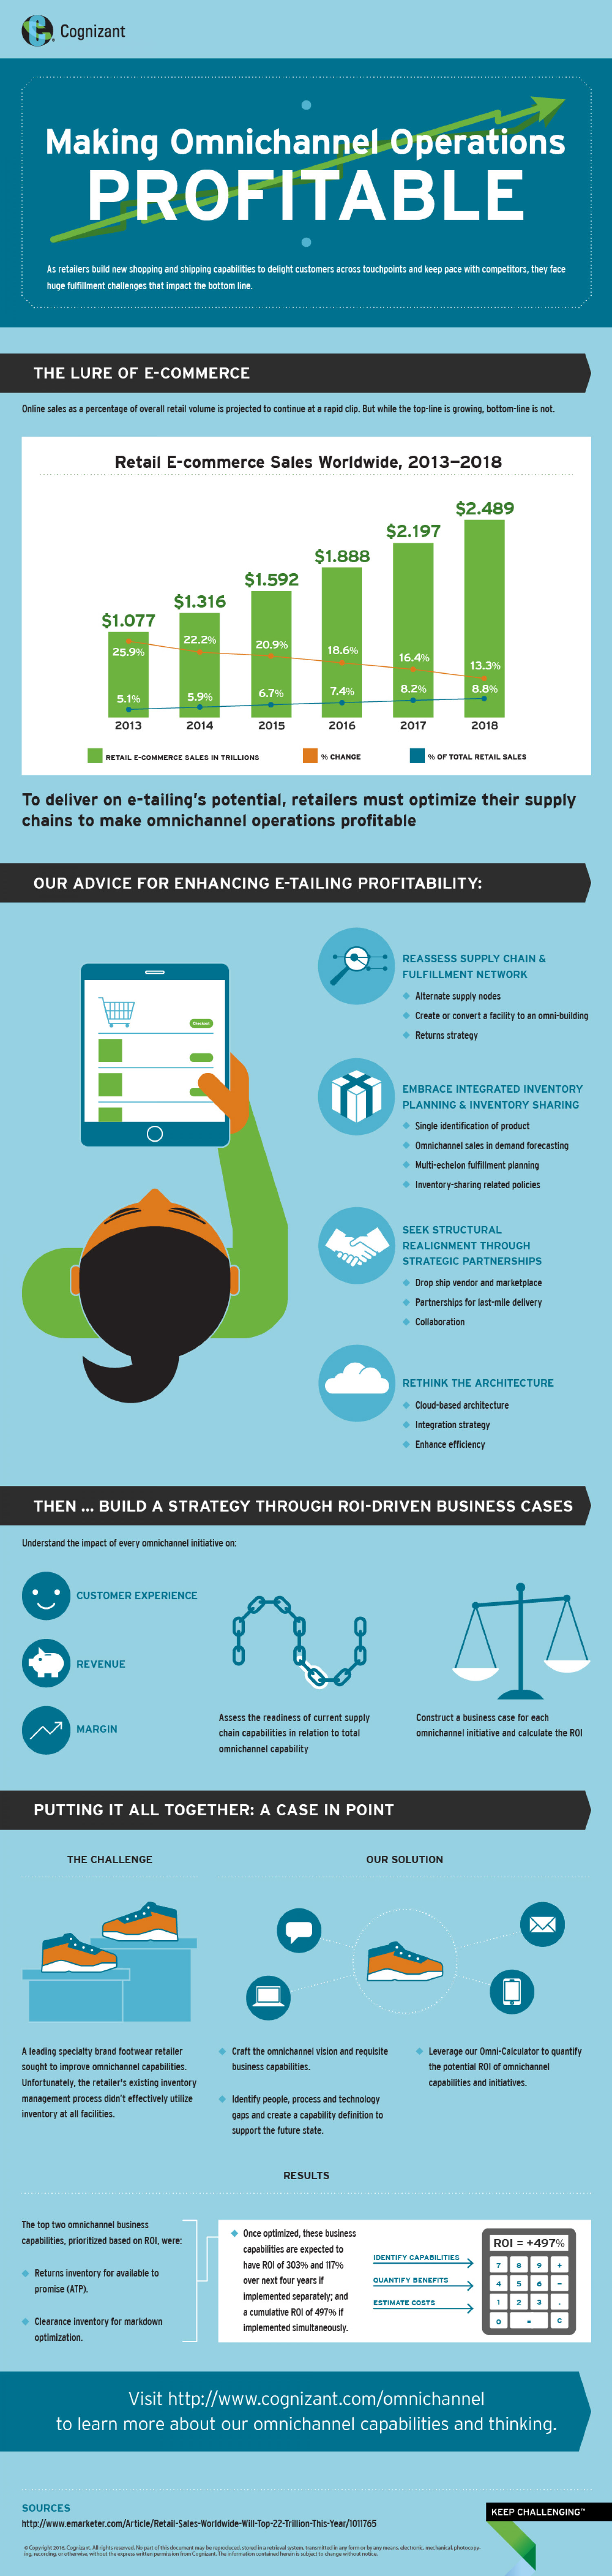 Making Omnichannel Operations Profitable Infographic